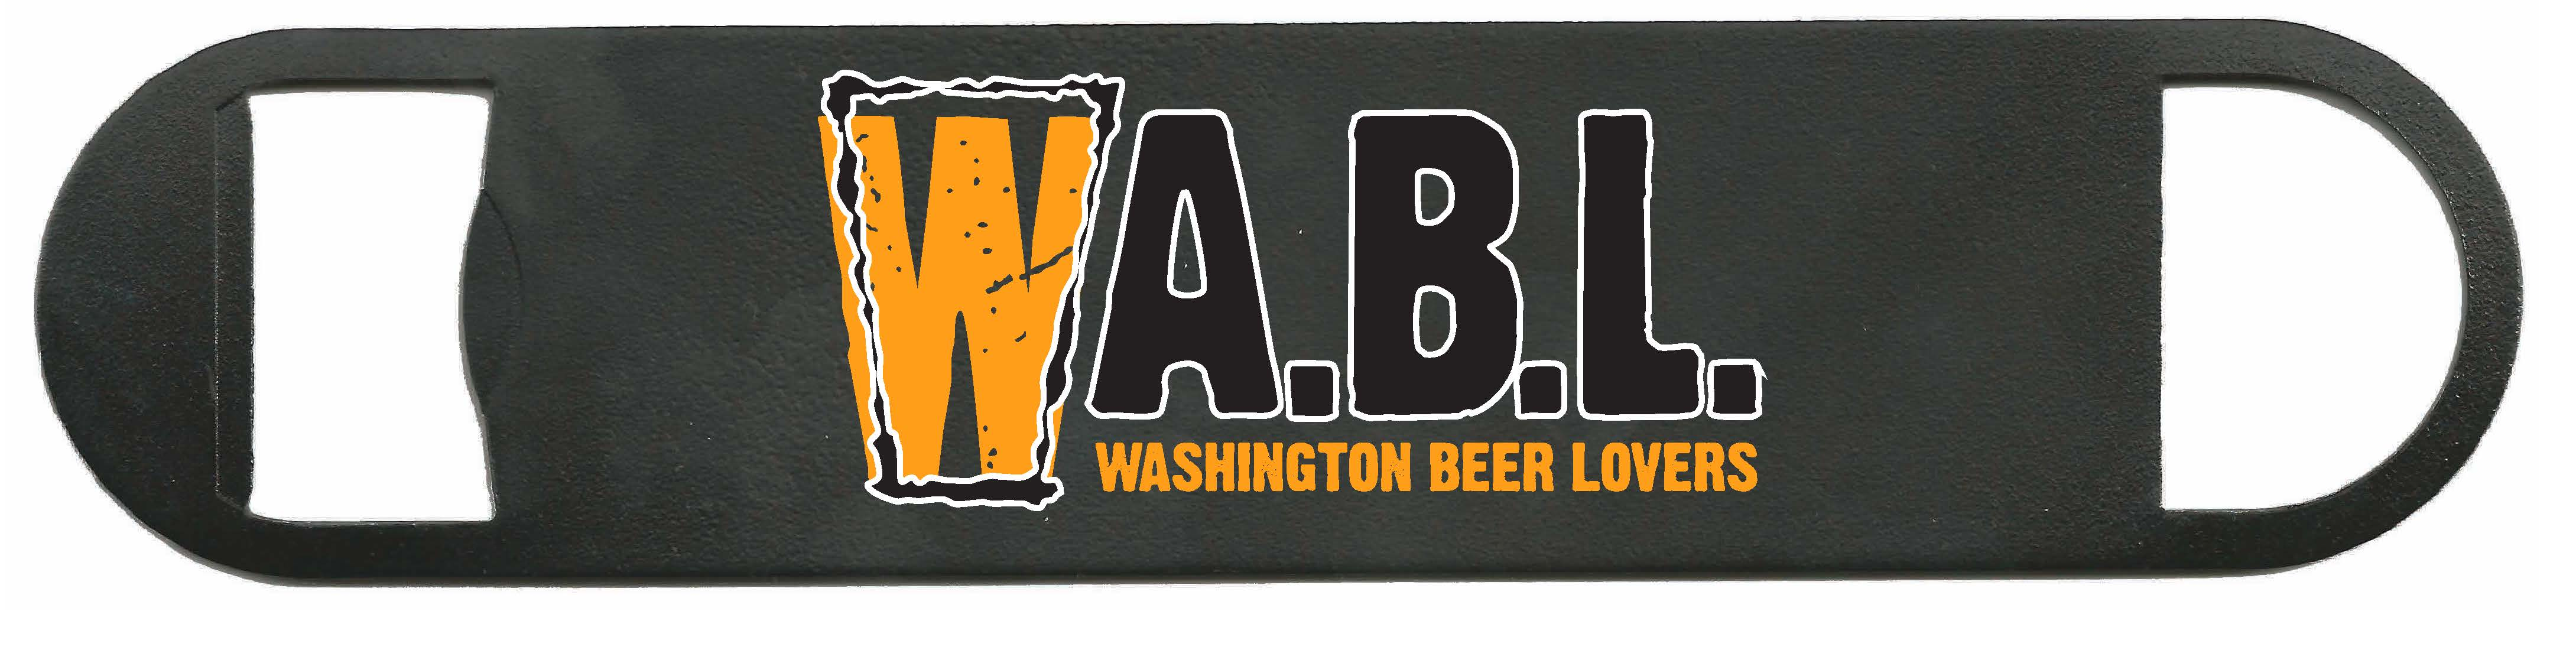 After 20 Brewery Visits You Can Redeem Your Passport For Your Very Own Wabl  Insulated Pint